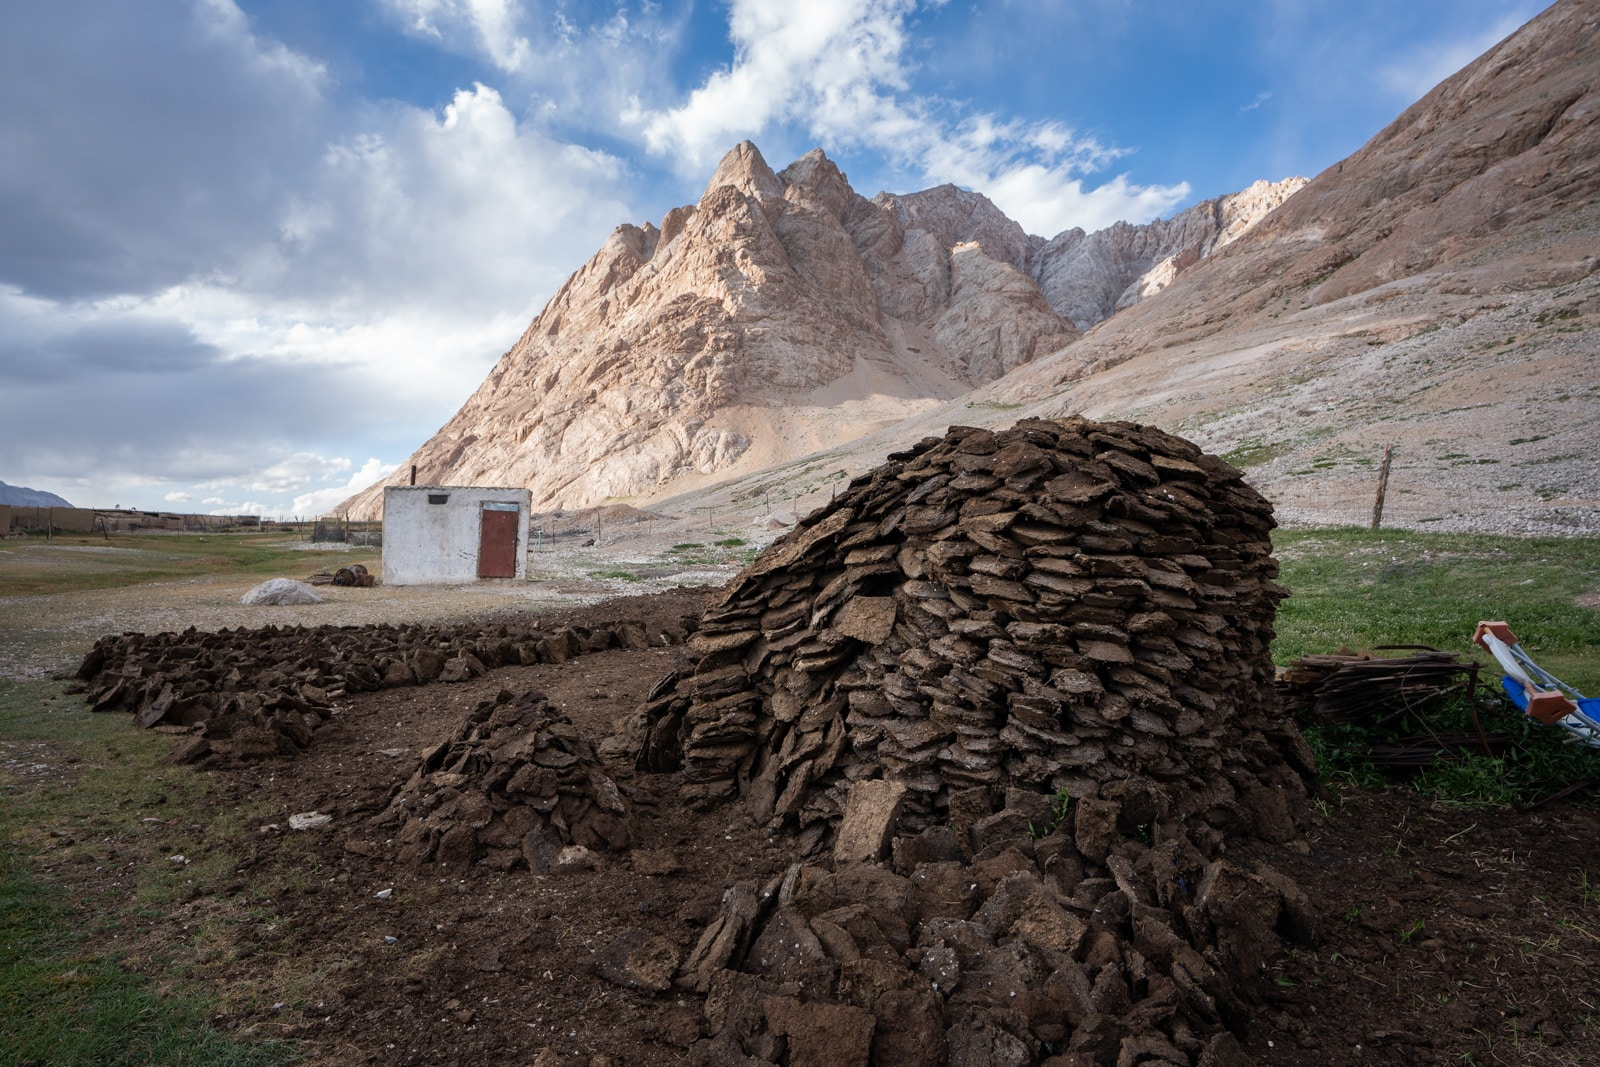 Pile of cow dung for fires in Shaimak, Tajikistan